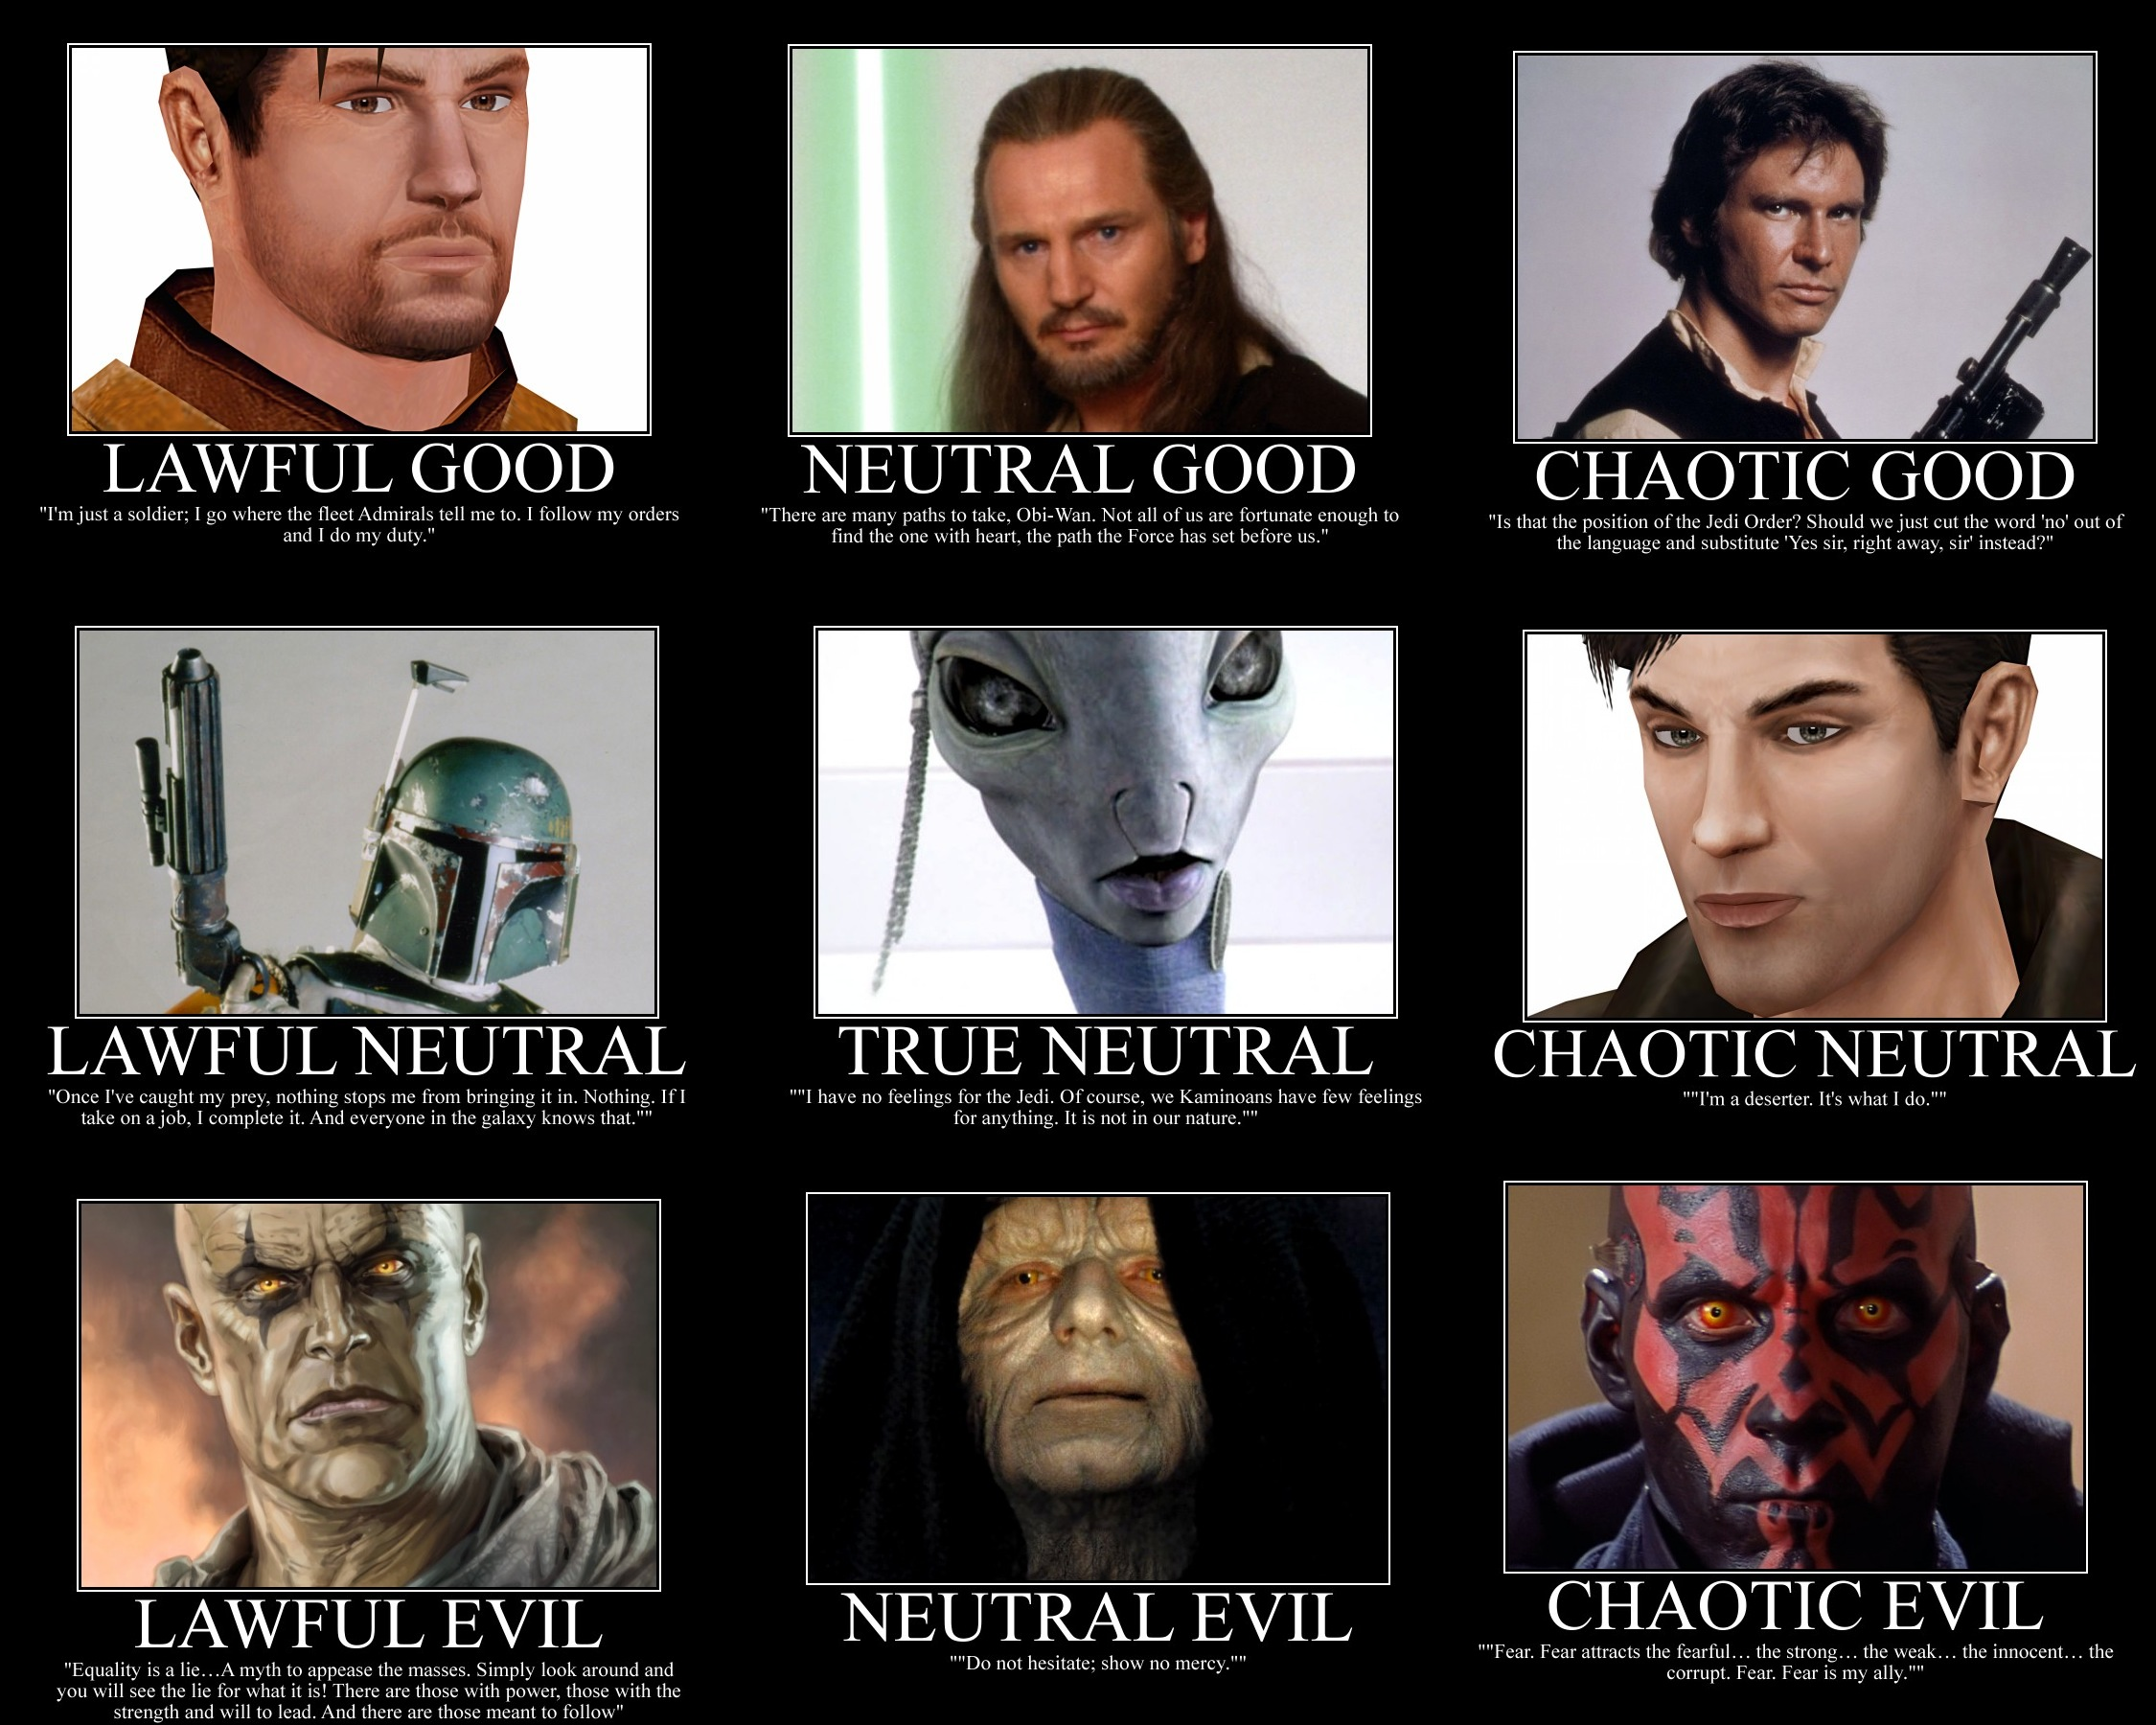 chaotic chart